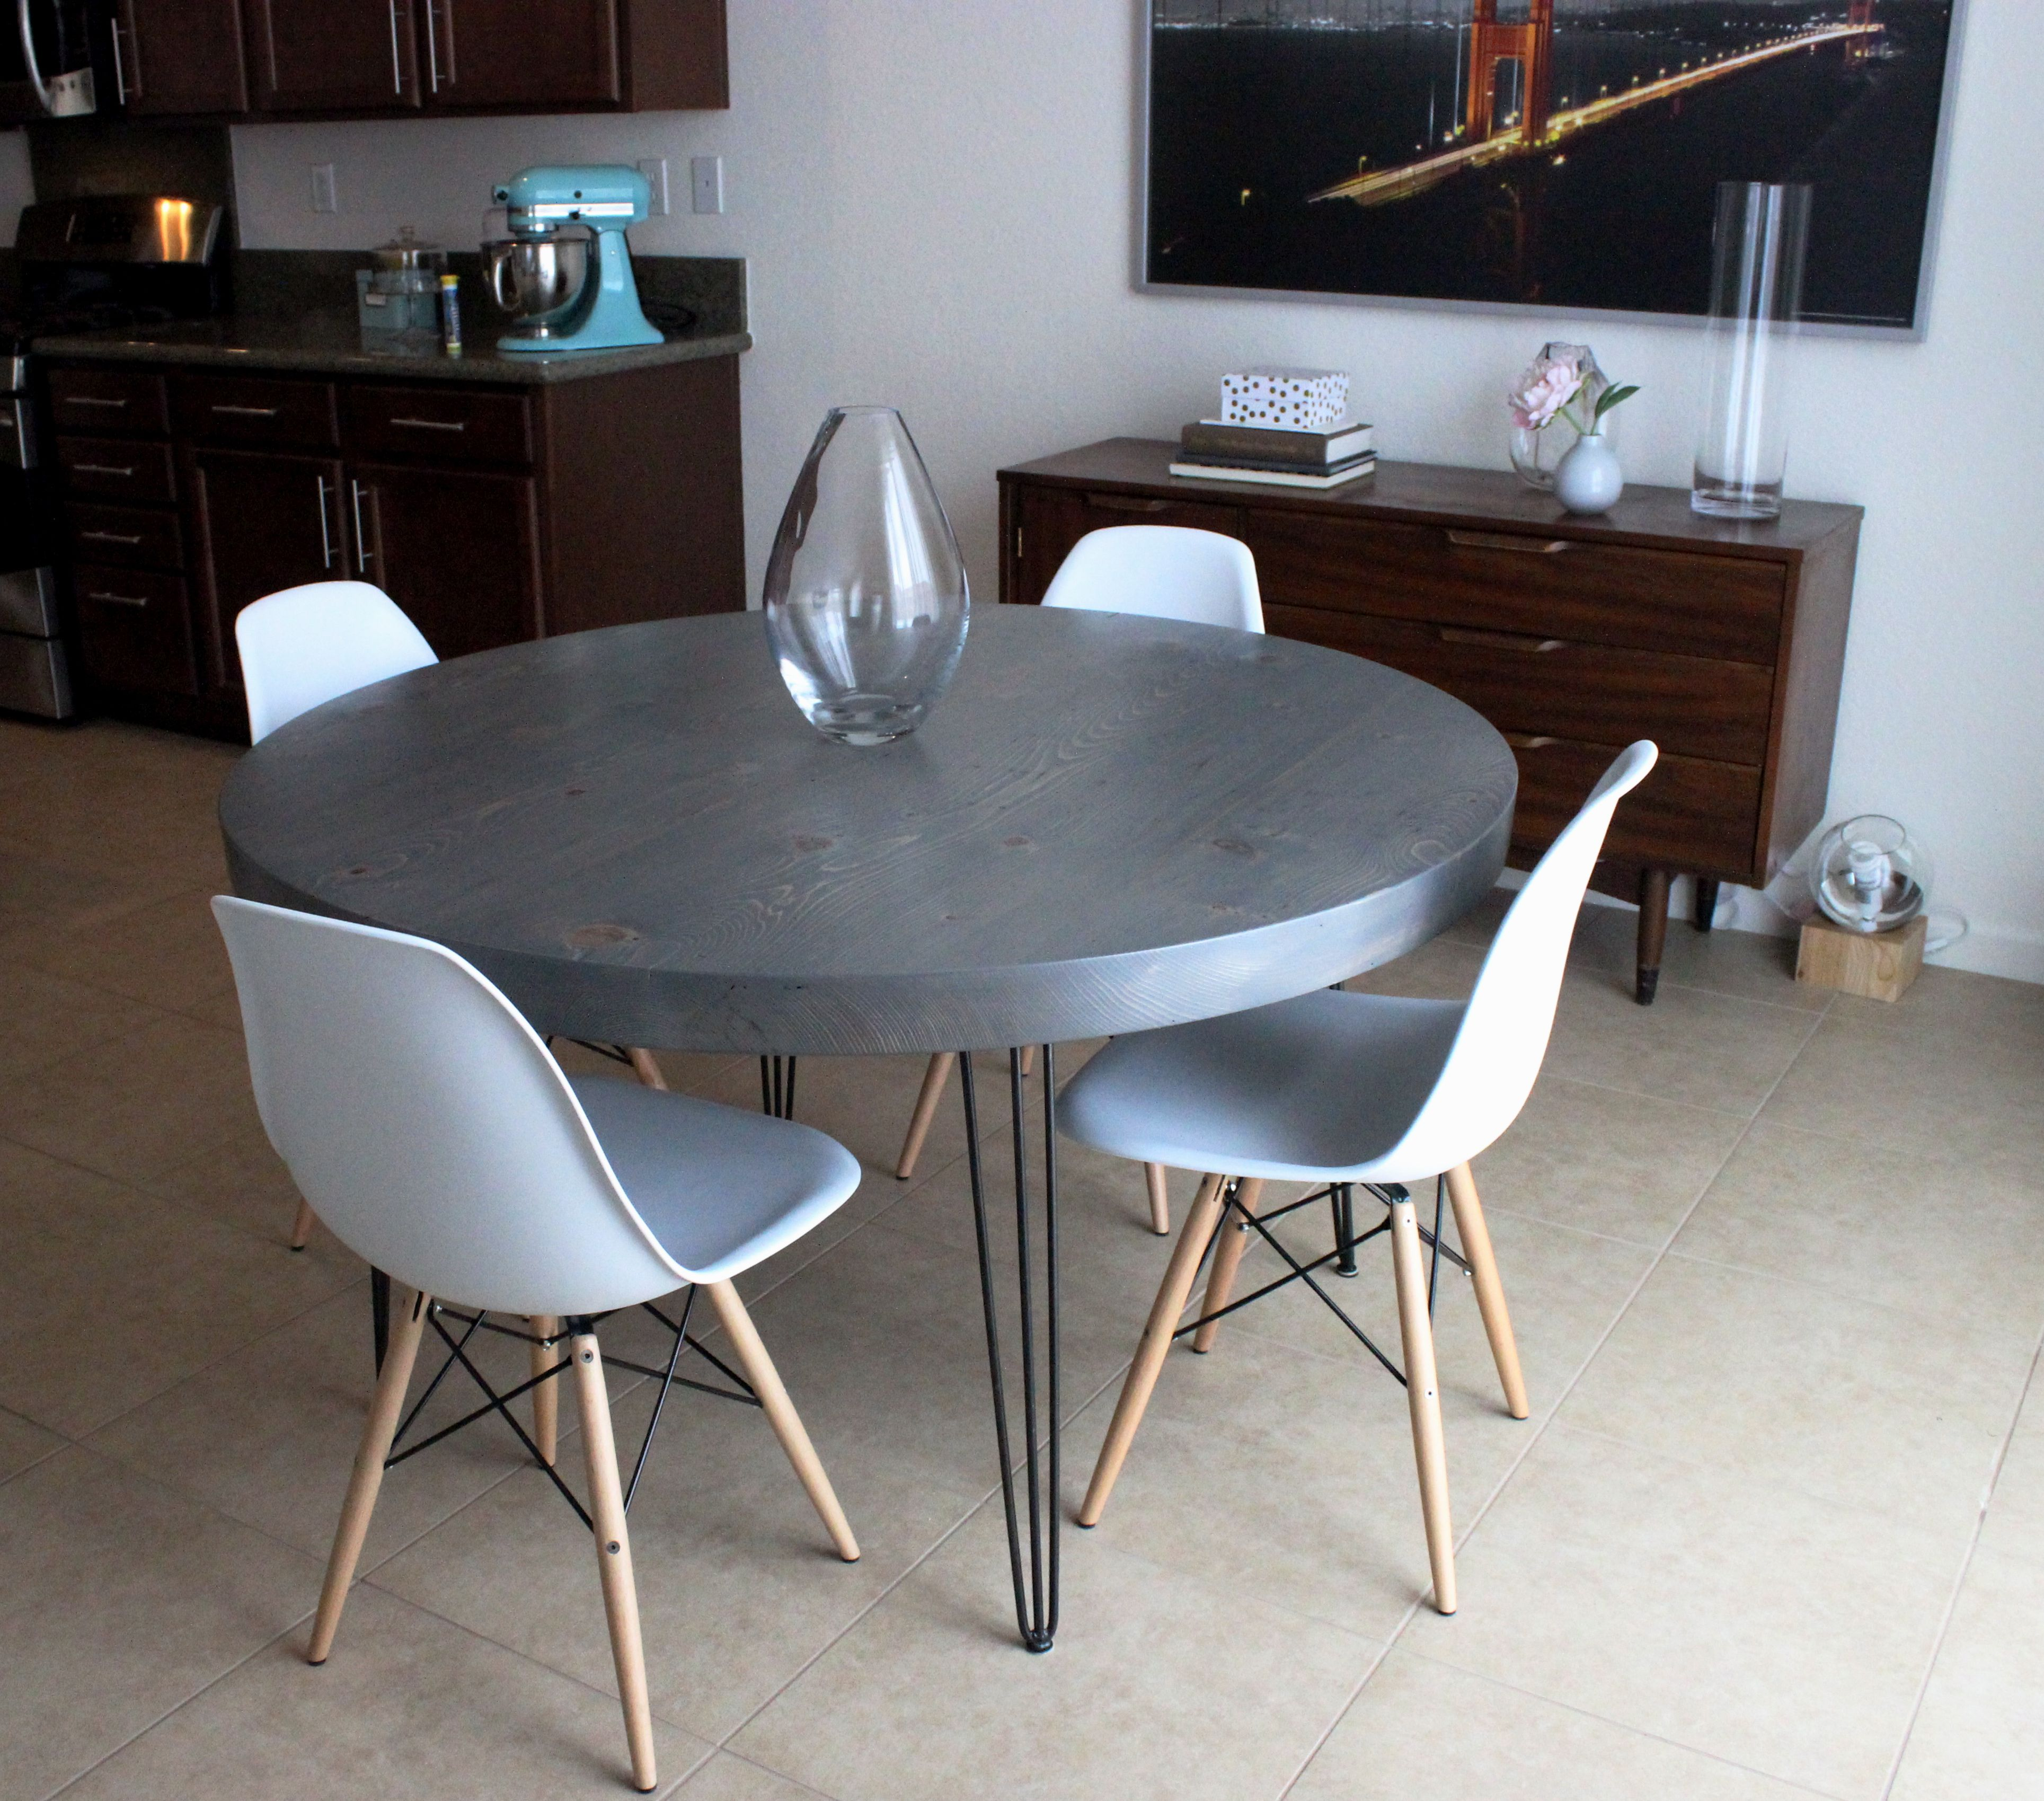 Round dining table and chairs for 4  custom made mid century modern round hairpin leg table with a